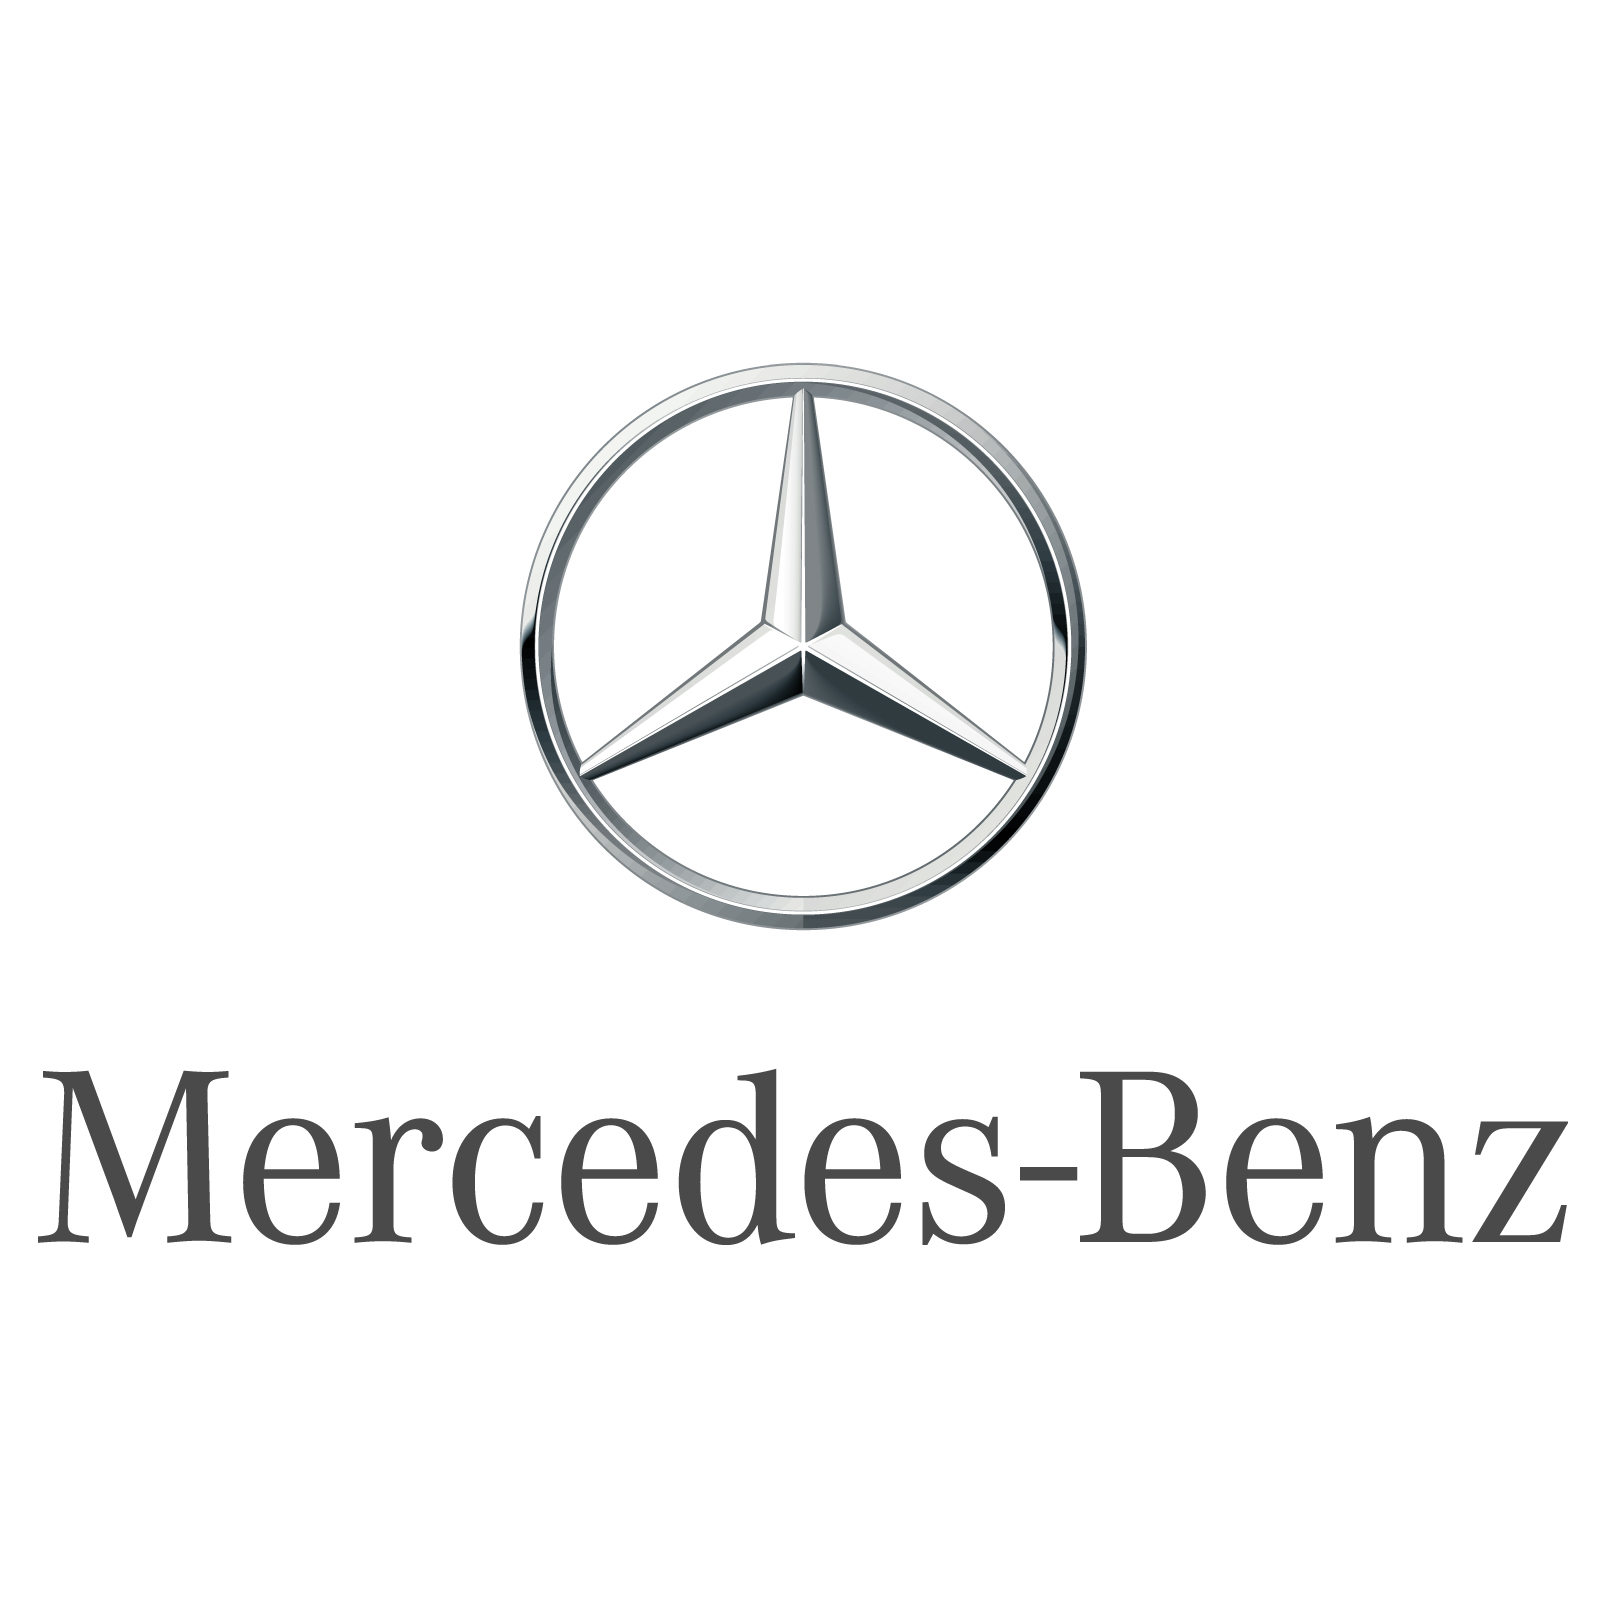 Genuine Mercedes Hose Clamp 900263-009000 - 5 METER BAND CLAMP ROLL